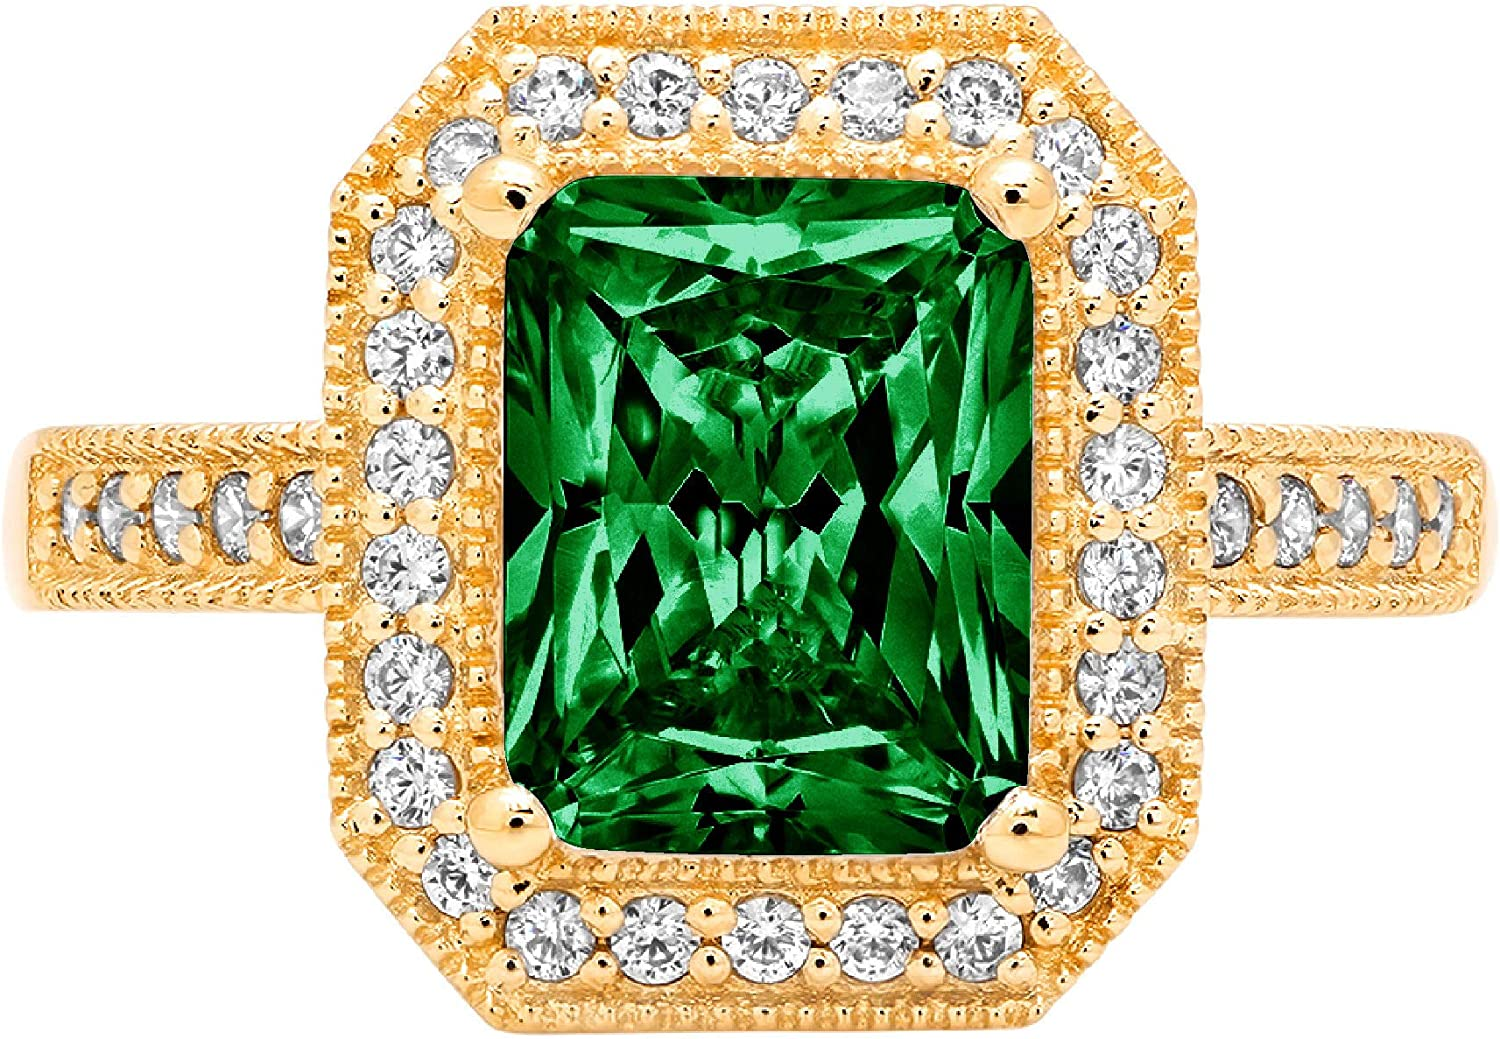 2.78ct Brilliant Emerald Cut Solitaire with Accent Halo Flawless Ideal VVS1 Simulated CZ Green Emerald Engagement Promise Statement Anniversary Bridal Wedding Designer Ring 14k Yellow Gold